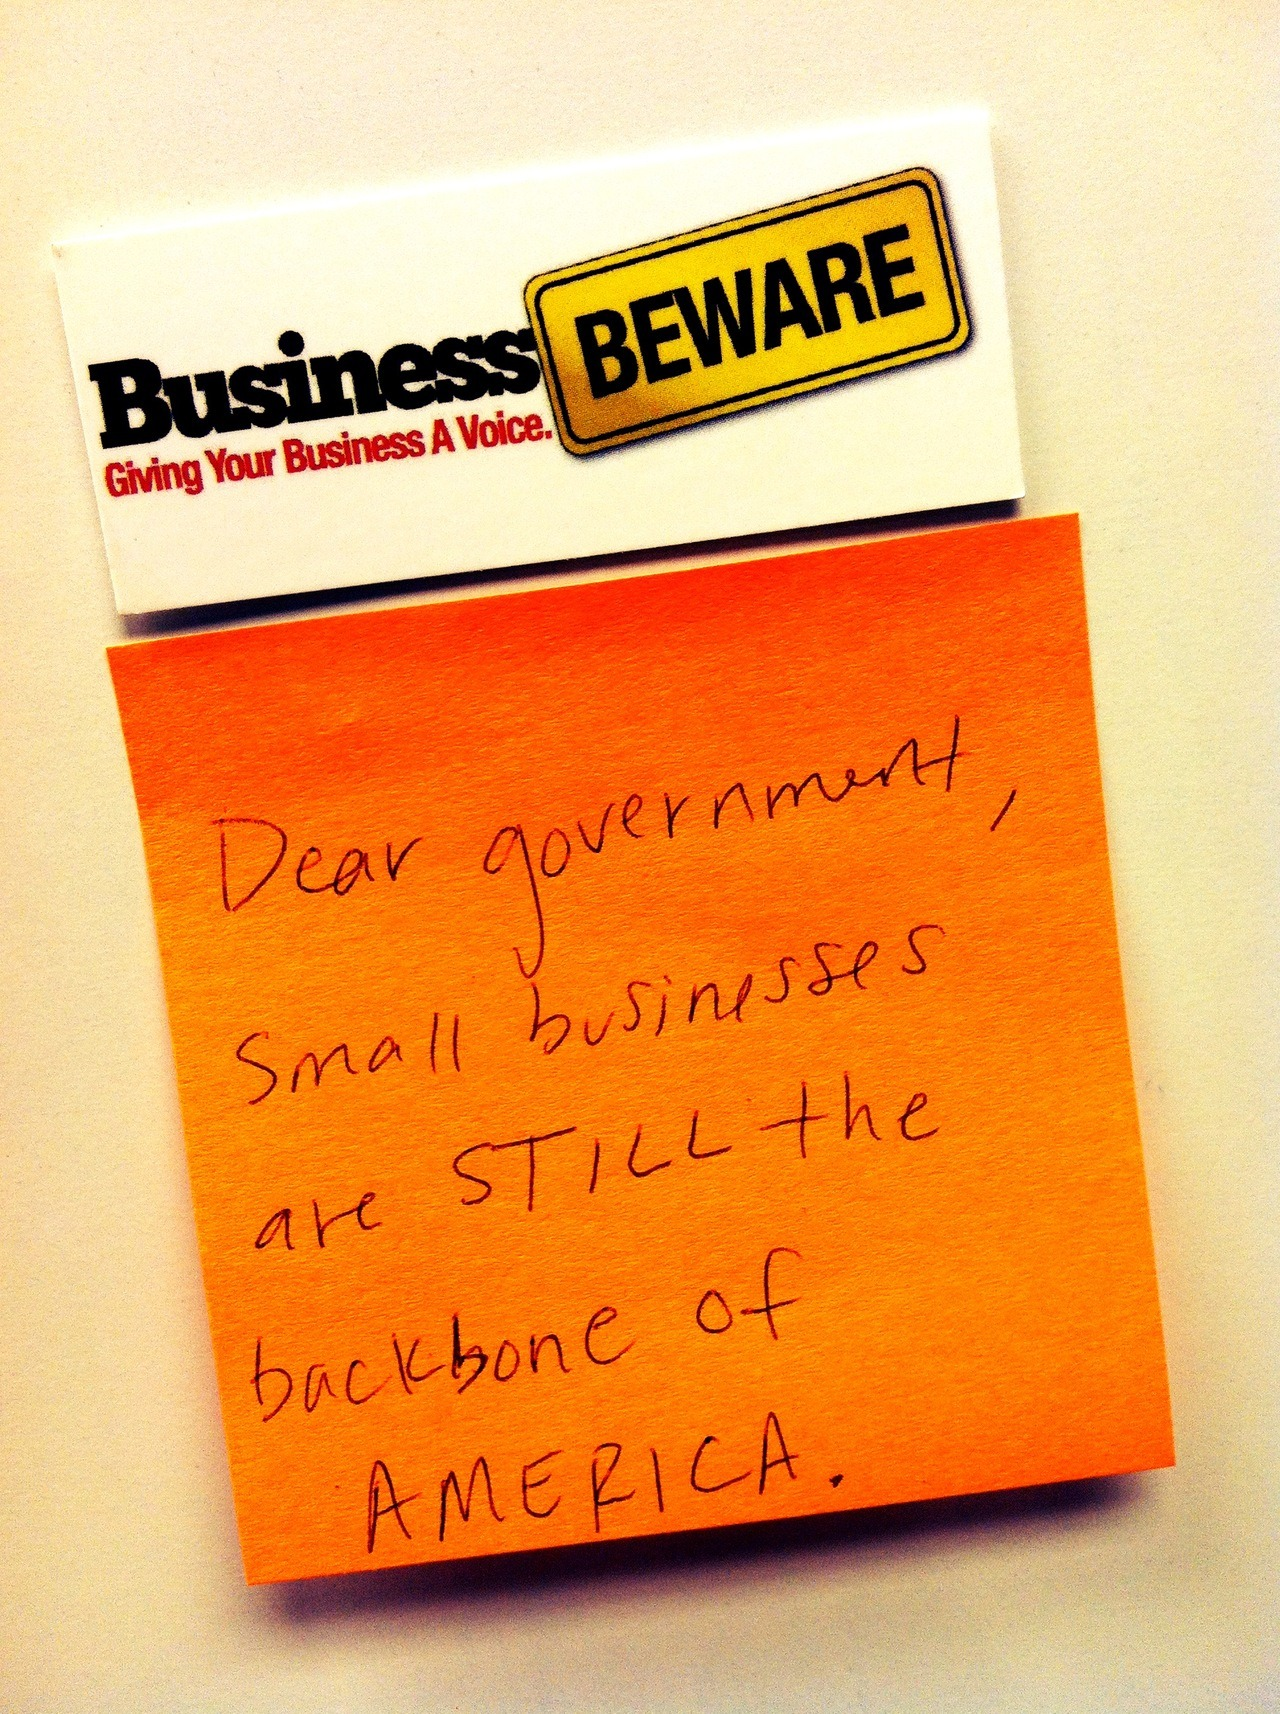 Dear Government, small businesses are STILL the backbone of America…